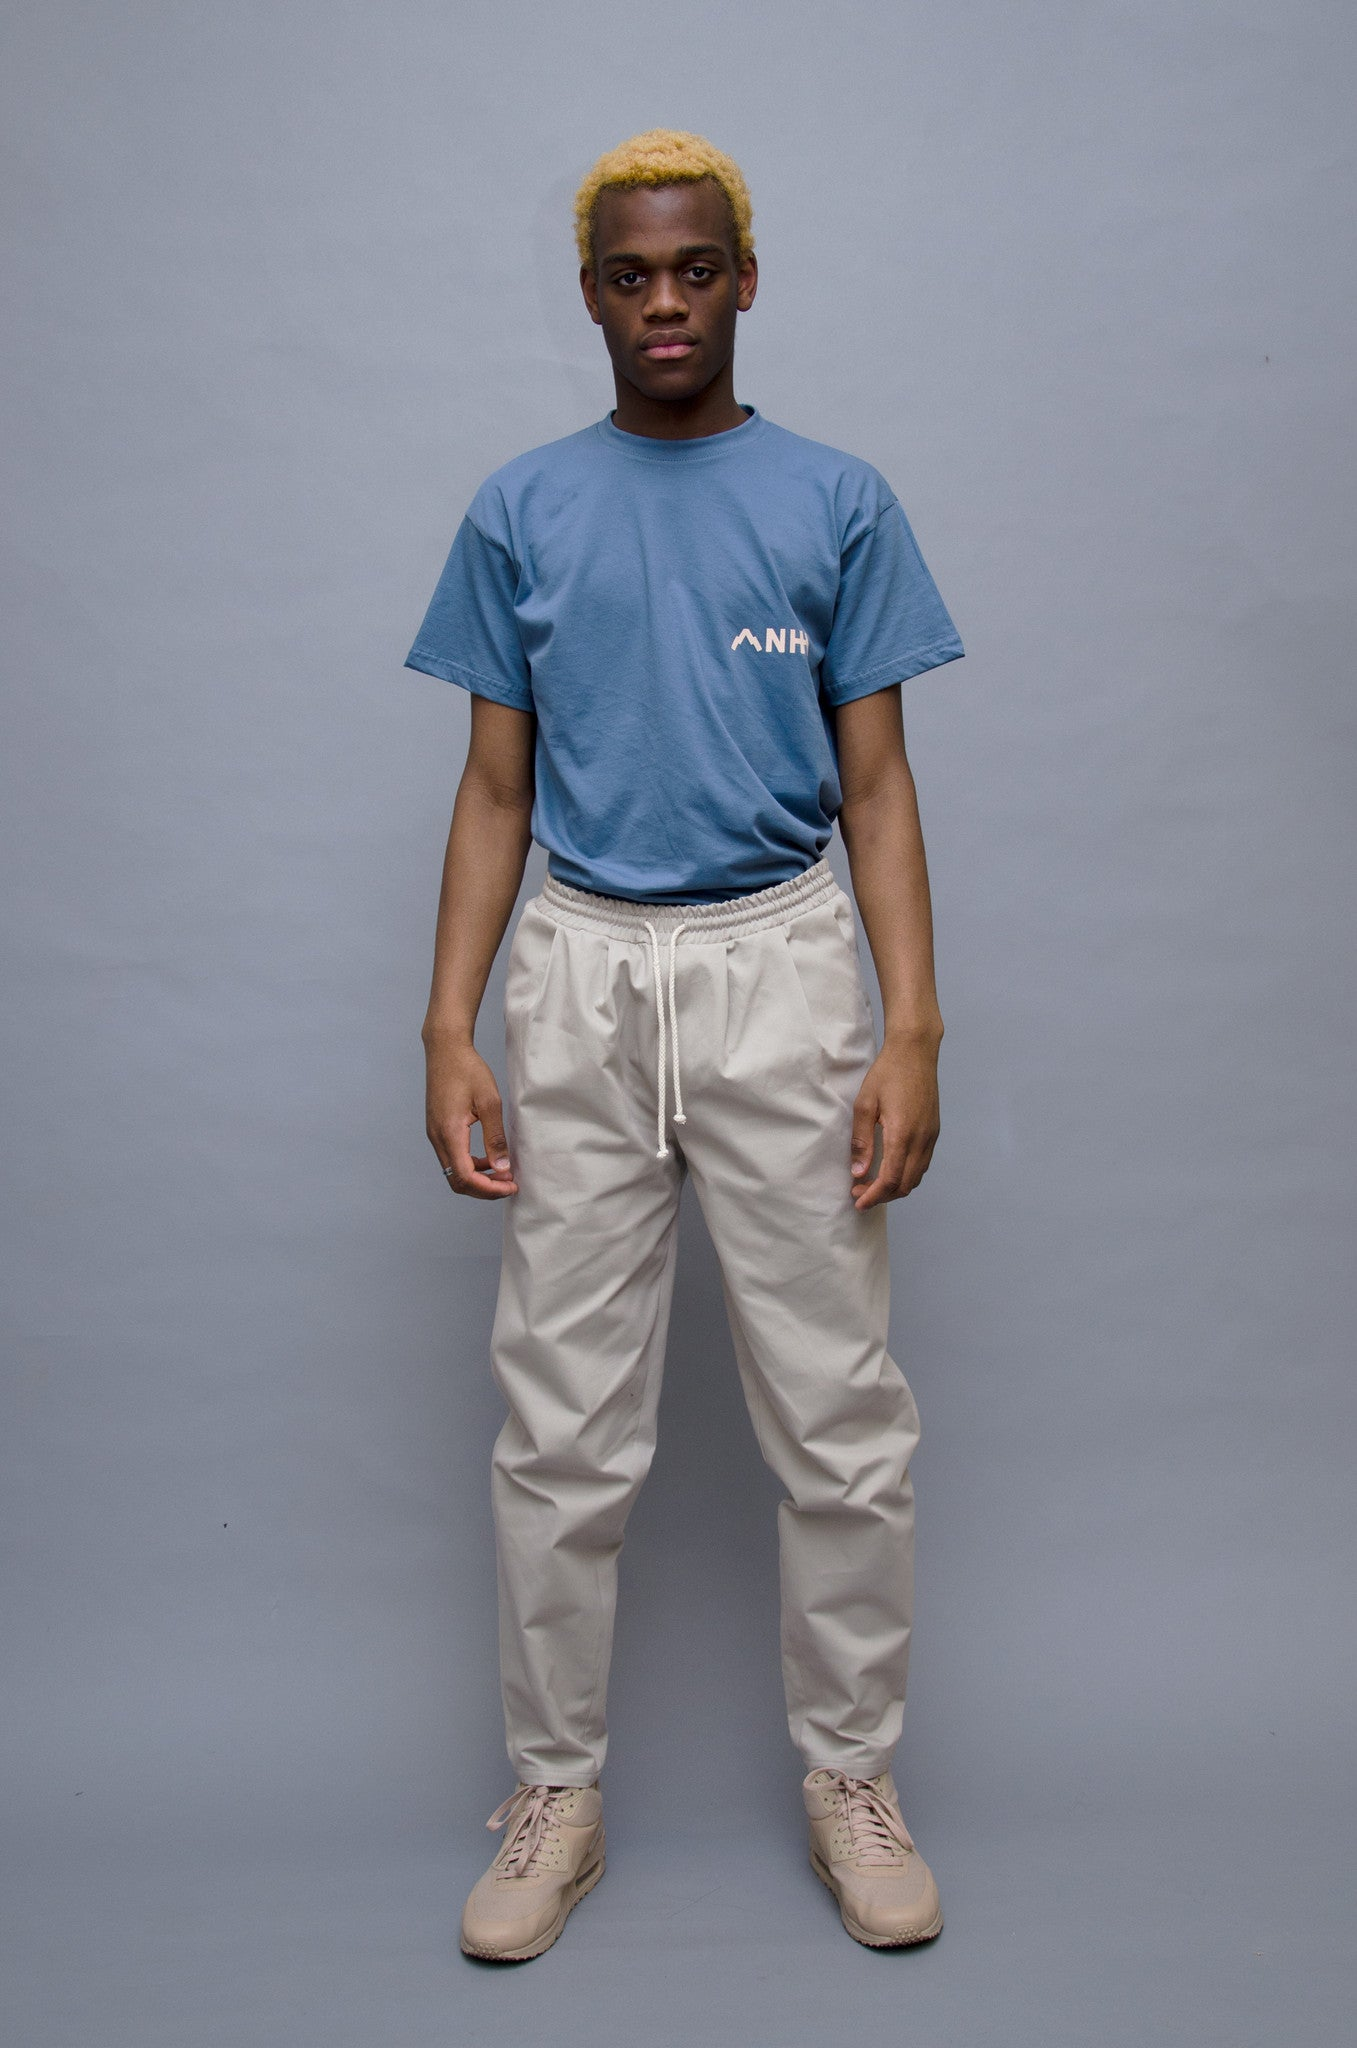 The North Hill Karma Pants is a made in France pants